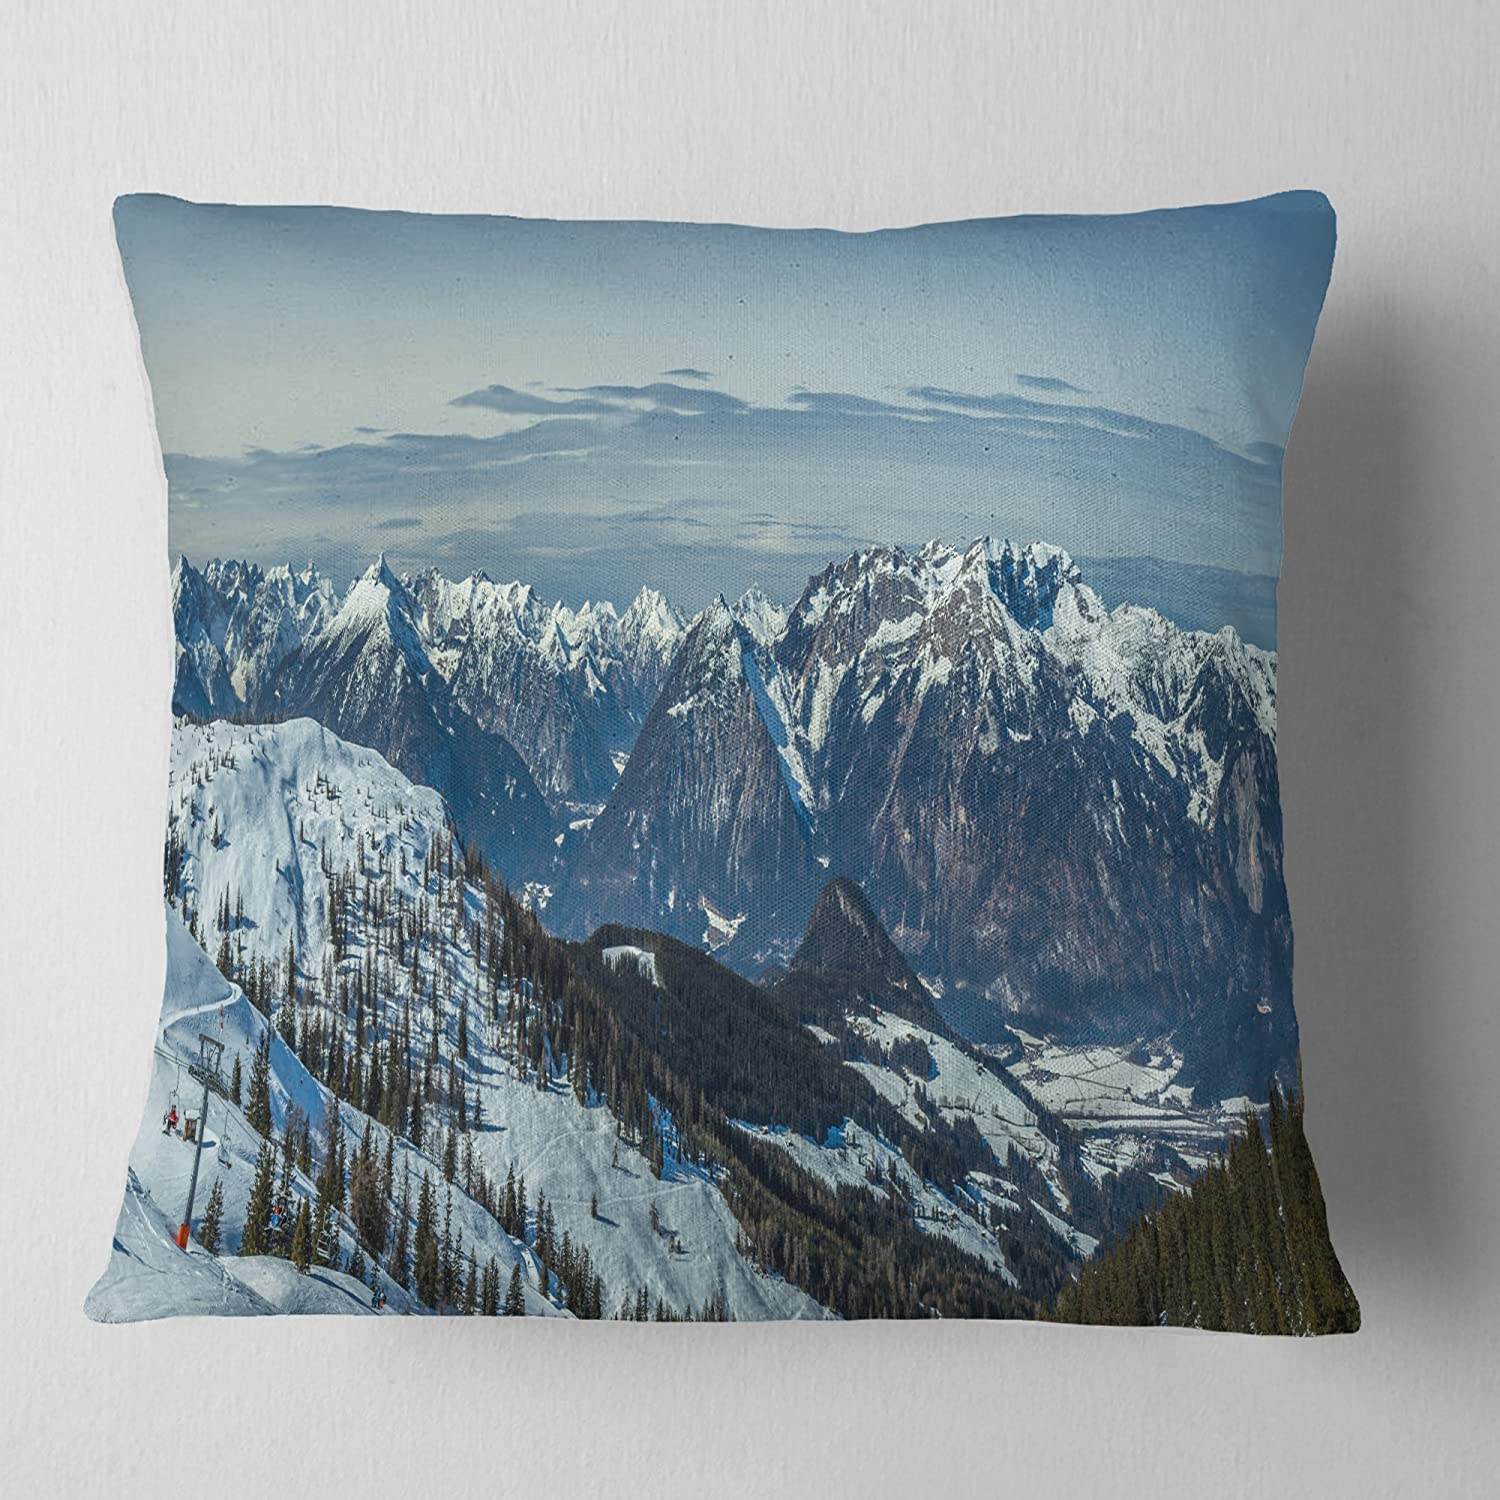 Designart CU11789-16-16 White Ski Slope Panoramic View' Landscape Printed Cushion Cover for Living Room, Sofa Throw Pillow 16 in. x 16 in. in